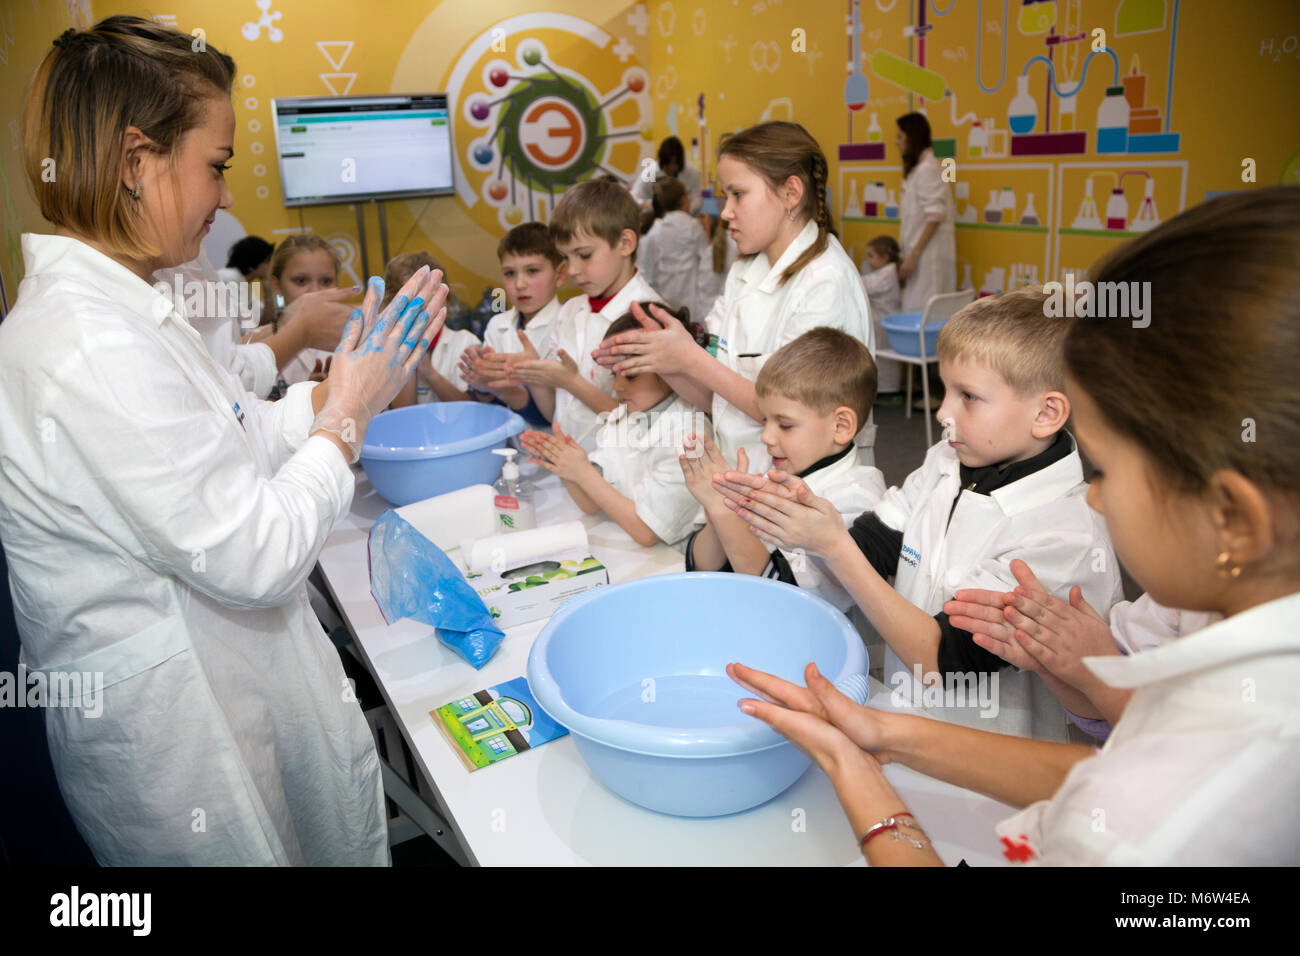 Doctor washes hands with children' at the children's interactive exhibition 'Become a doctor with EMIA' - Stock Image